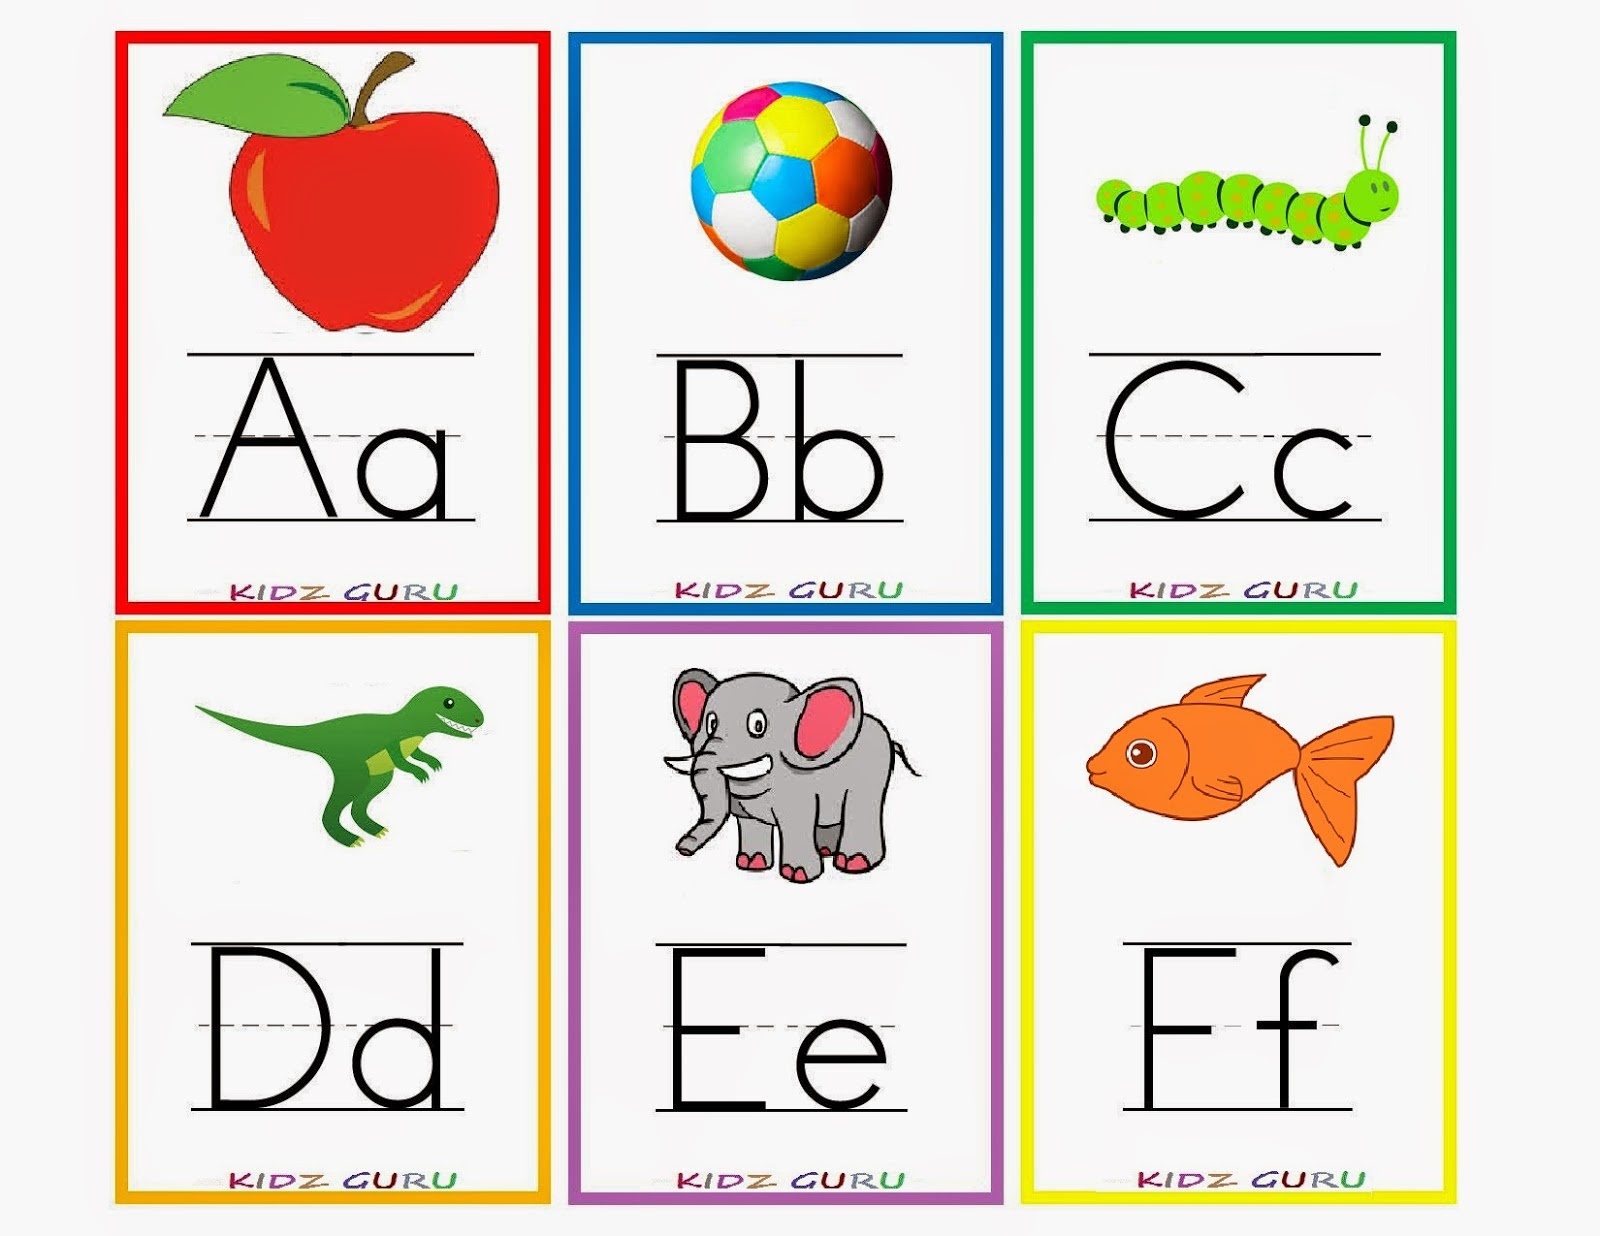 Kindergarten Worksheets: Printable Worksheets - Alphabet Flash Cards 1 - Free Printable Abc Flashcards With Pictures